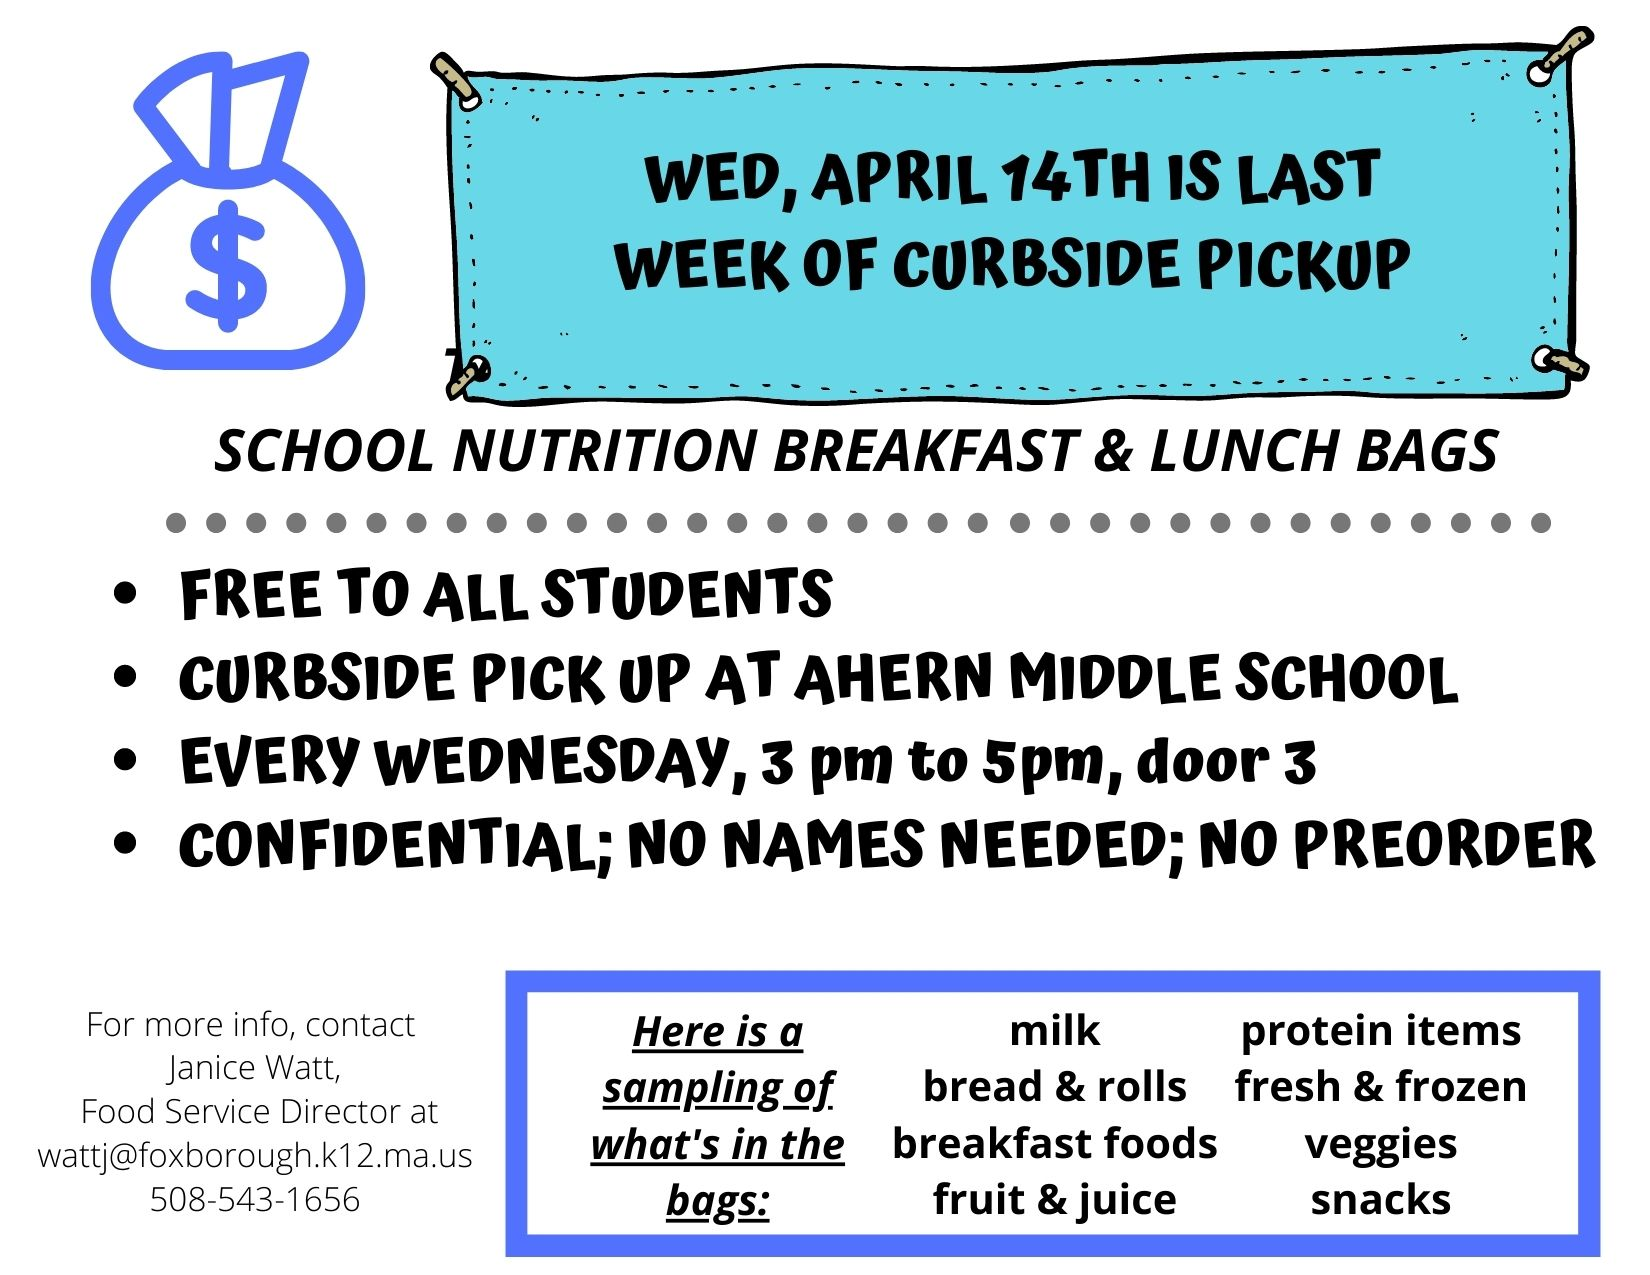 Copy of FREE TO ALL STUDENTS CURBSIDE PICK UP AT AHERN MIDDLE SCHOOL MONDAYS & THURSDAYS, 12-2 pm CONFIDENTIAL; NO NAMES NEEDED.jpg